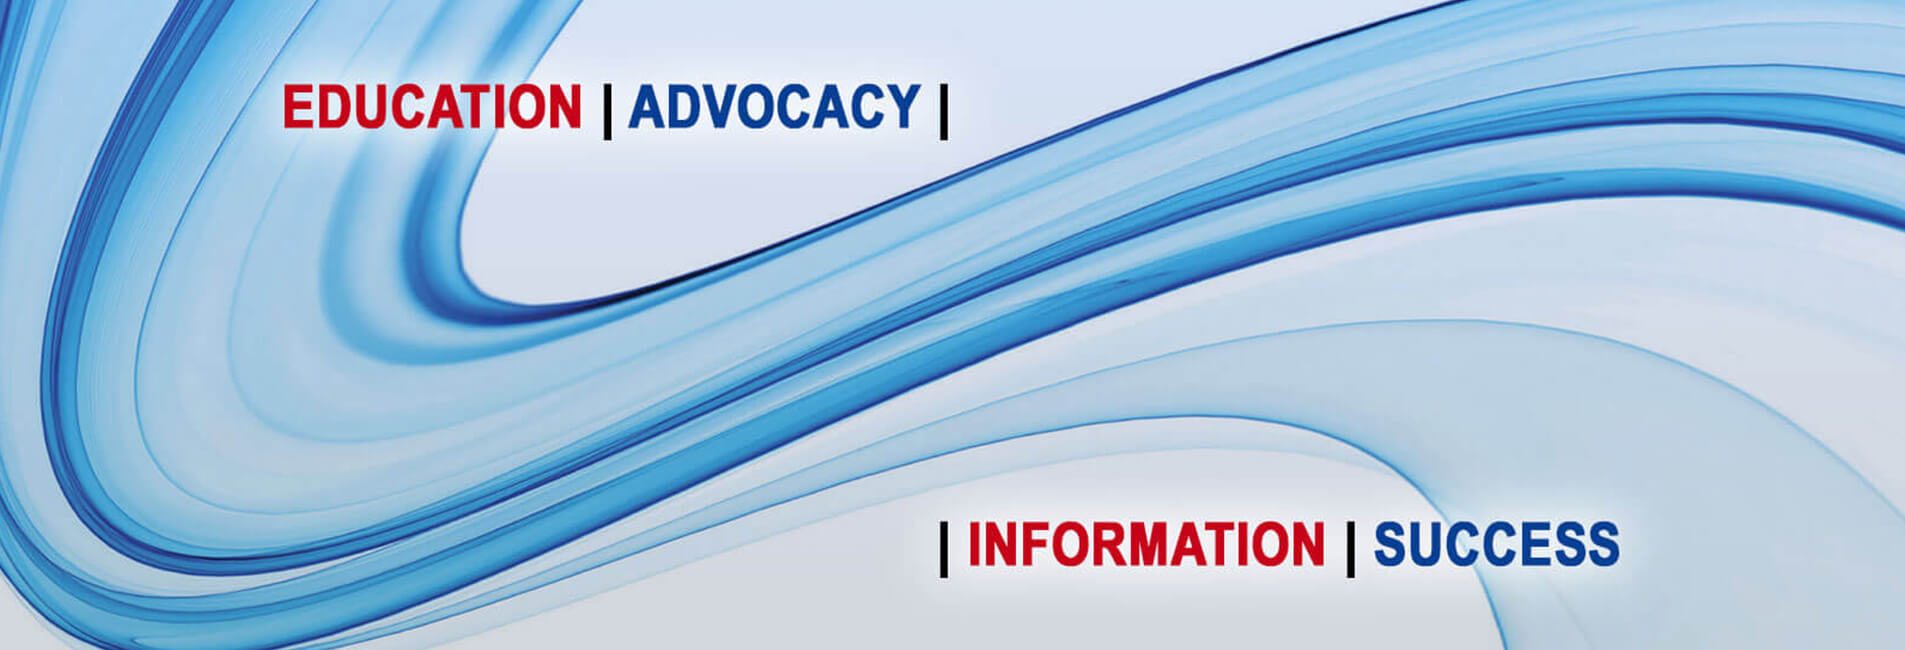 Education Advocacy Information Success